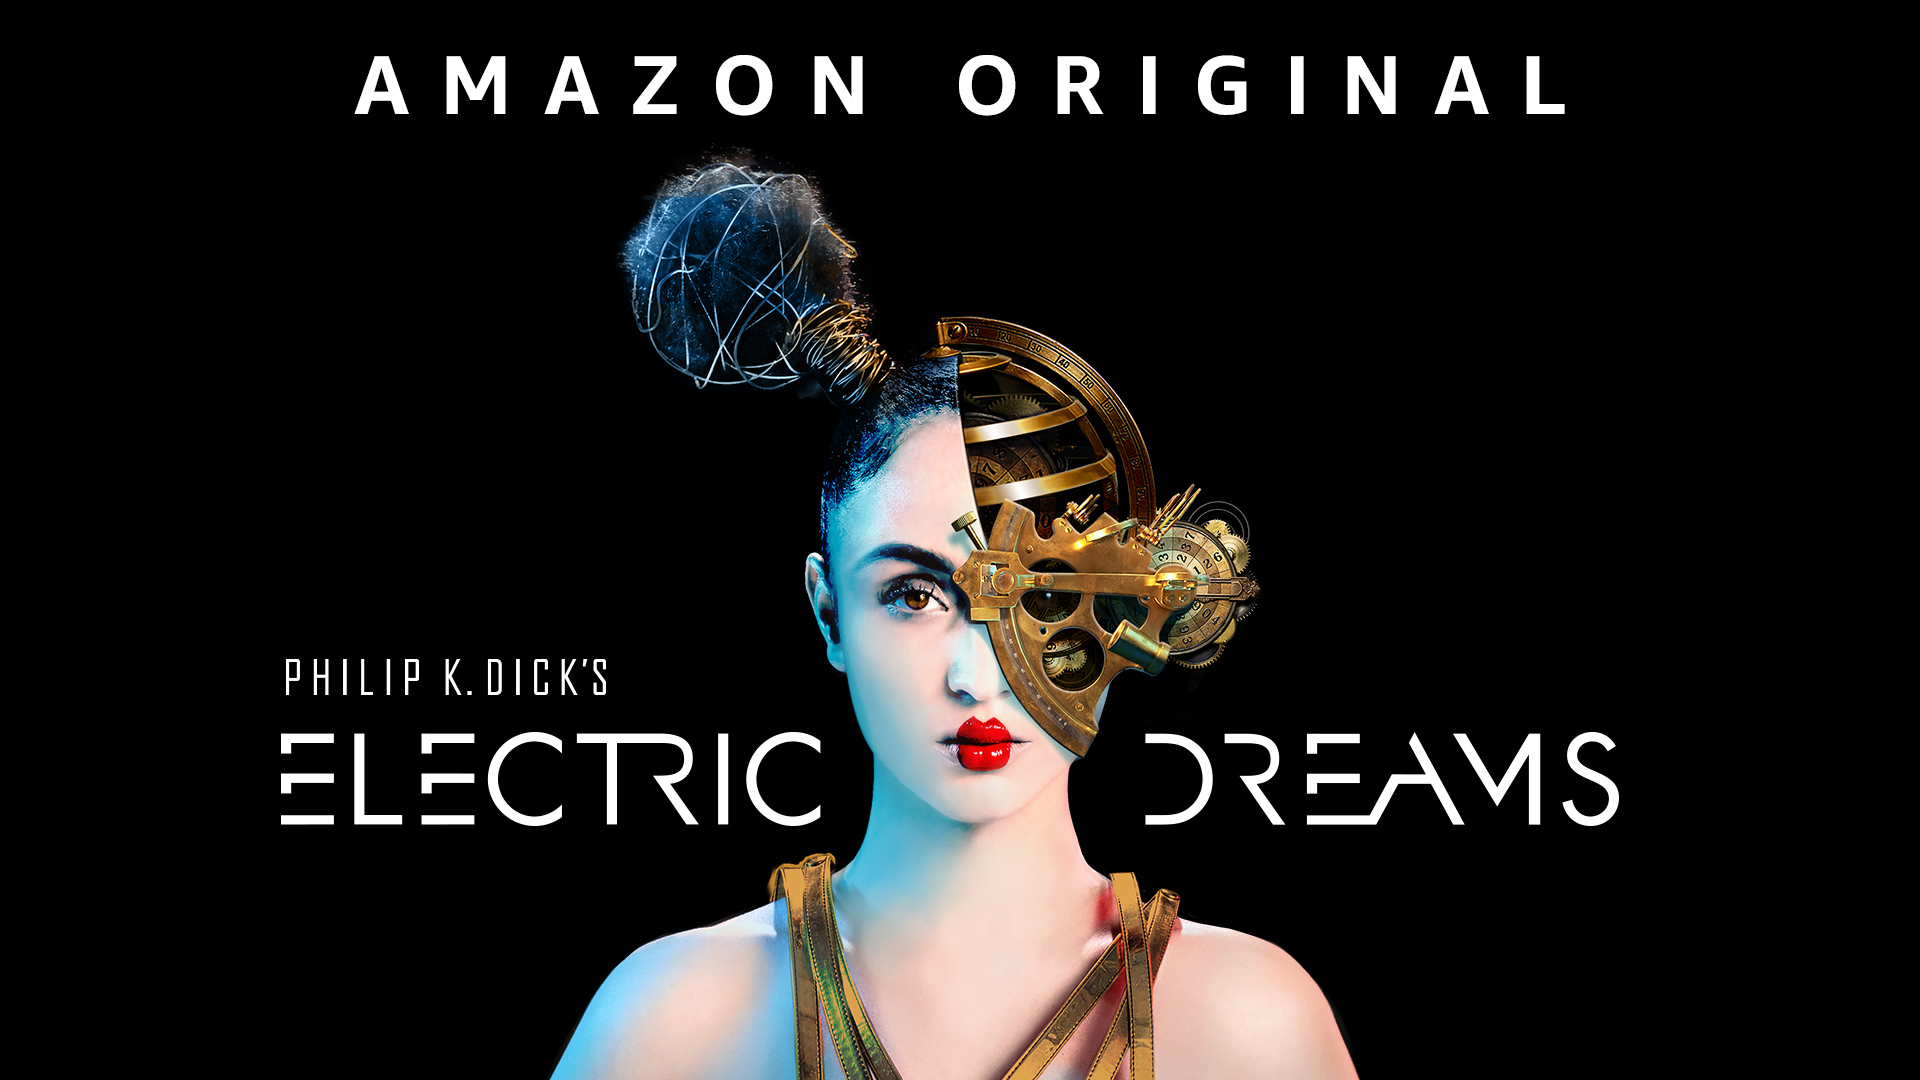 Philip K. Dick's Electric Dreams, Season 1